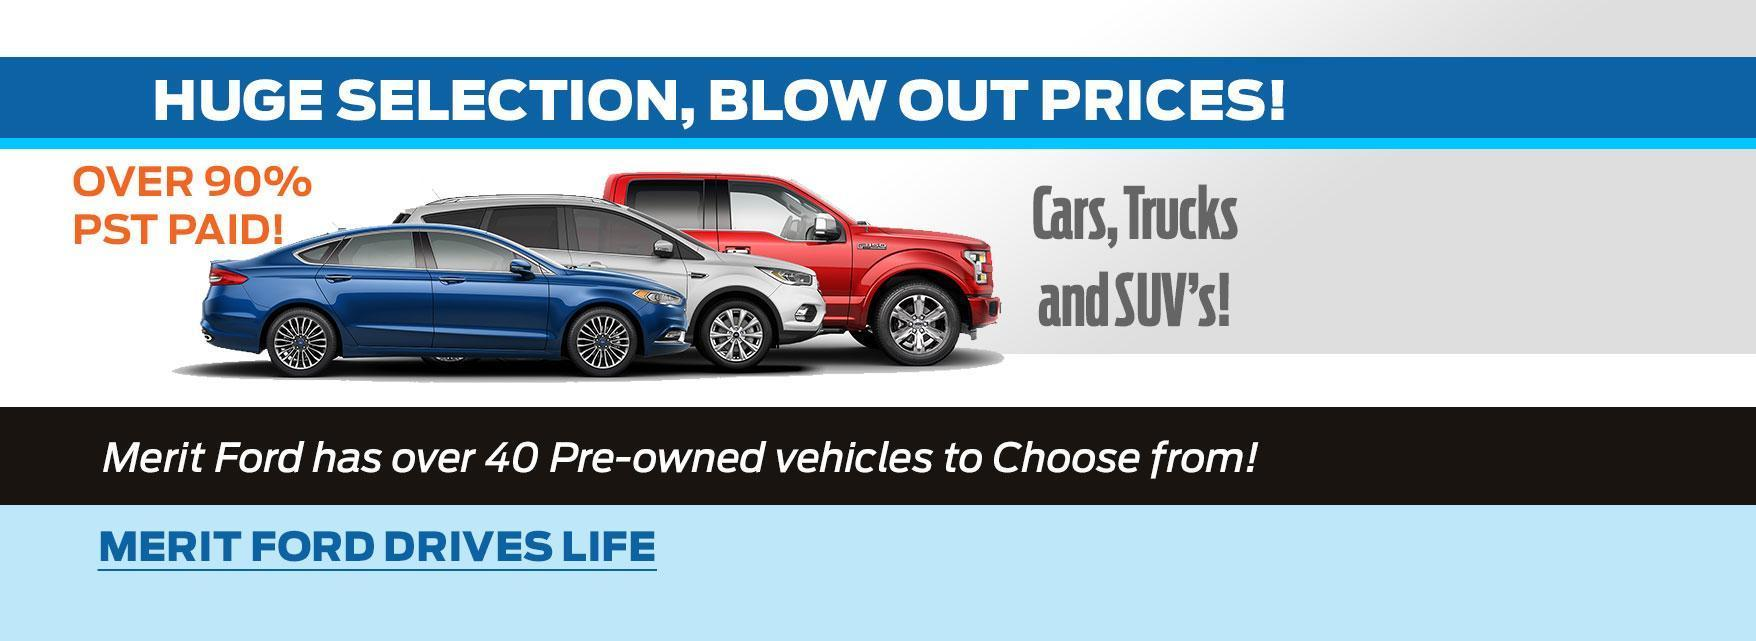 Blow out prices for used inventory